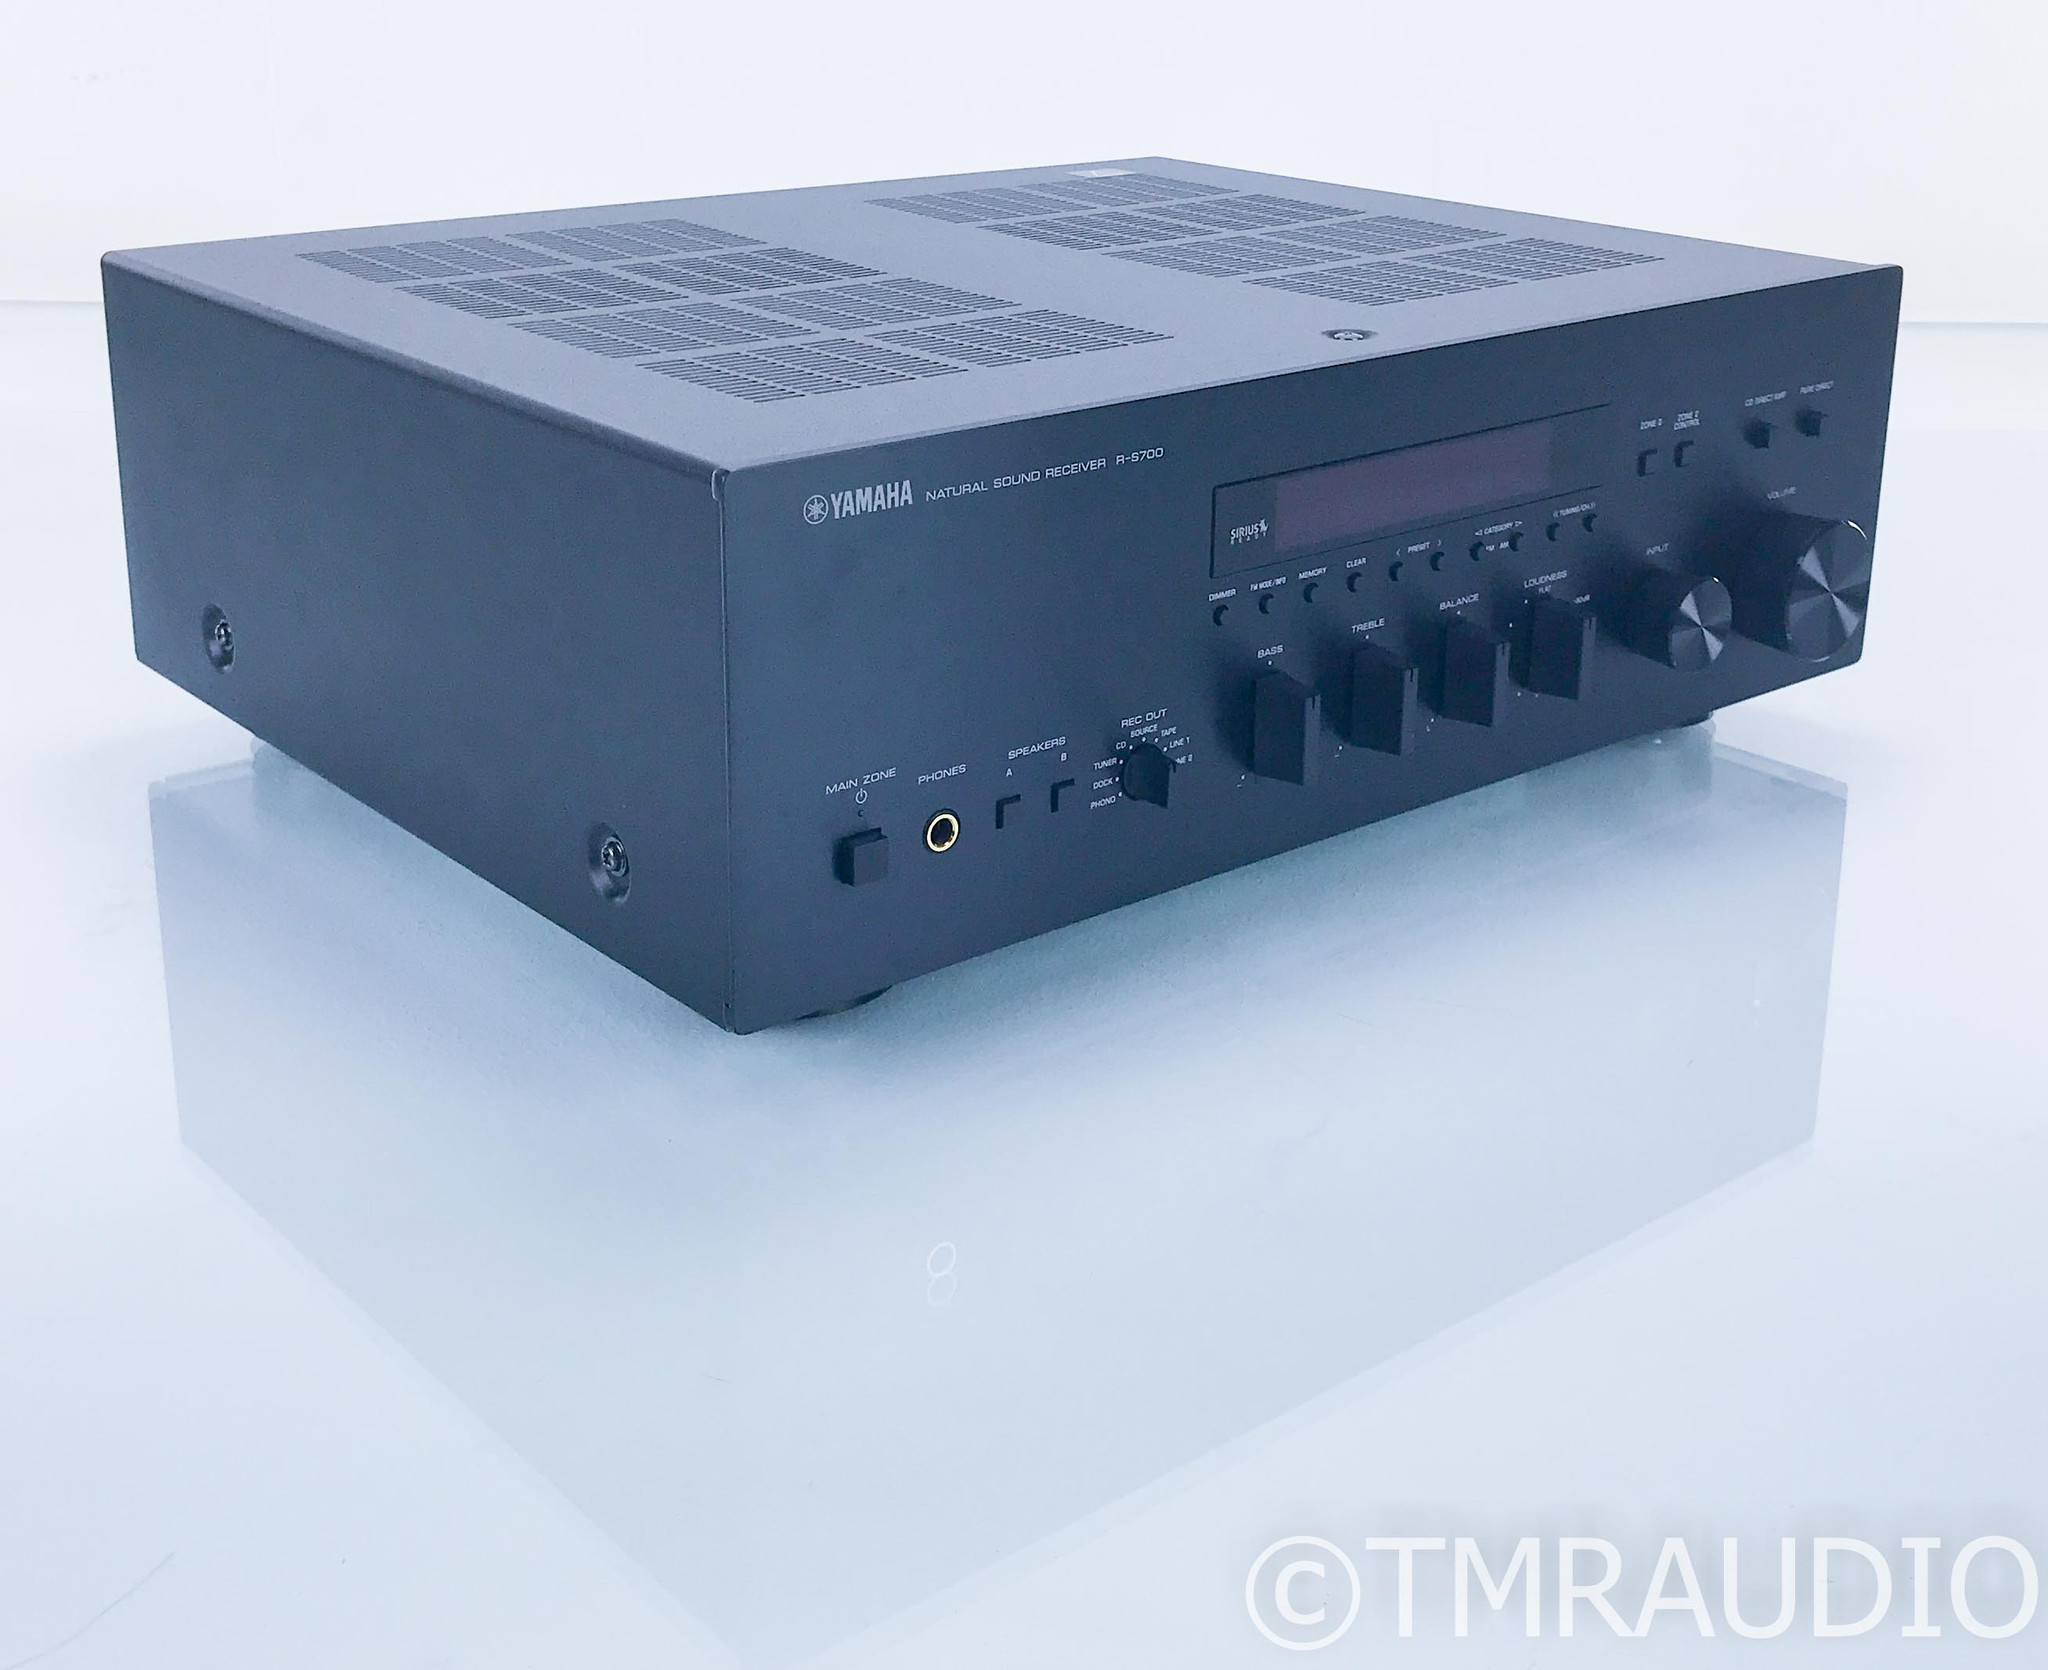 Yamaha R S700 Stereo Integrated Amplifier Receiver Rs700